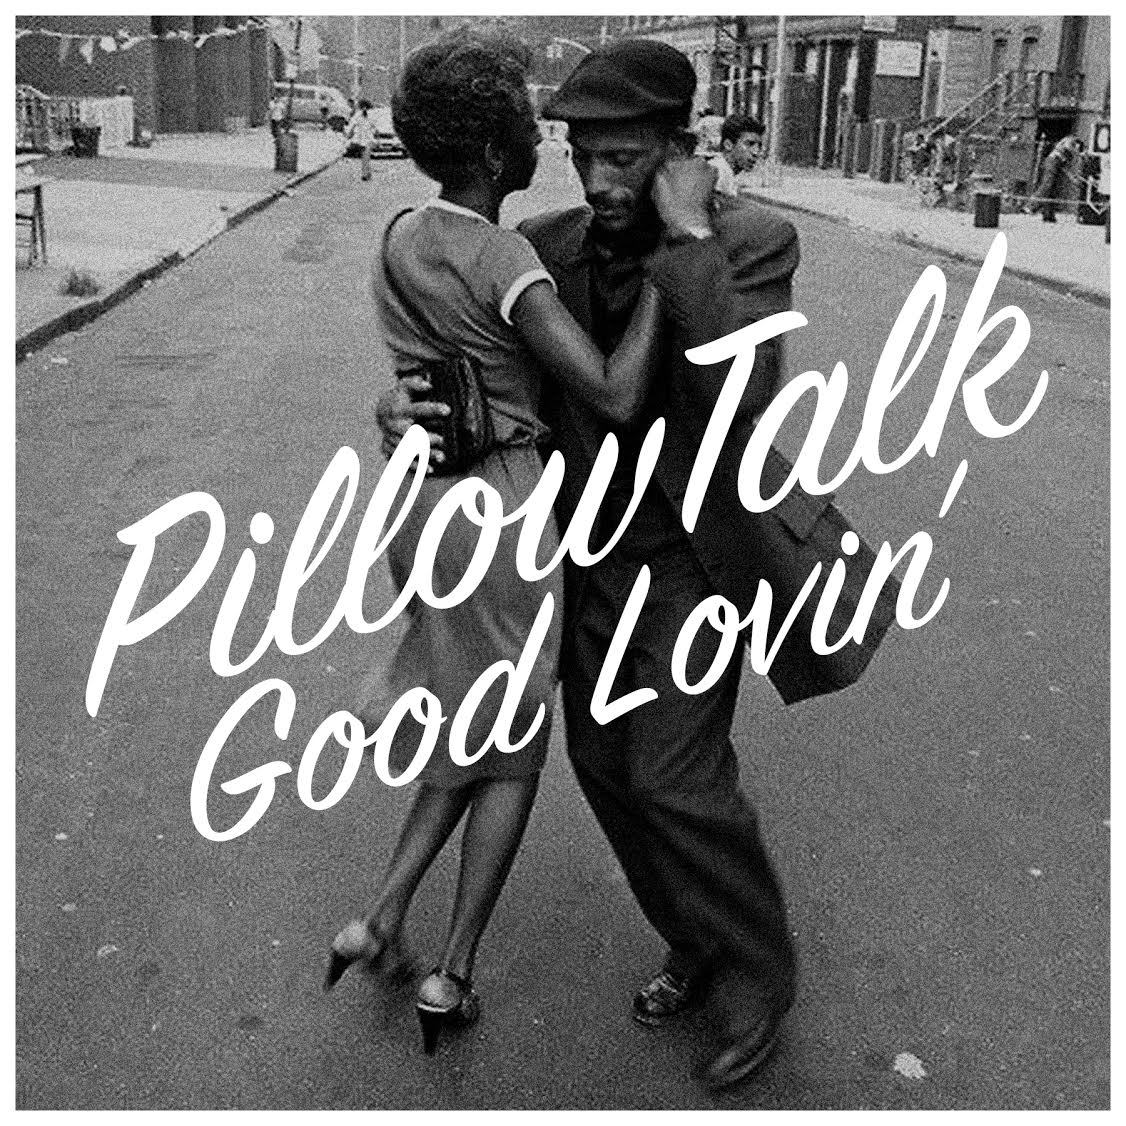 DYLTS - PillowTalk - Goog Lovin'